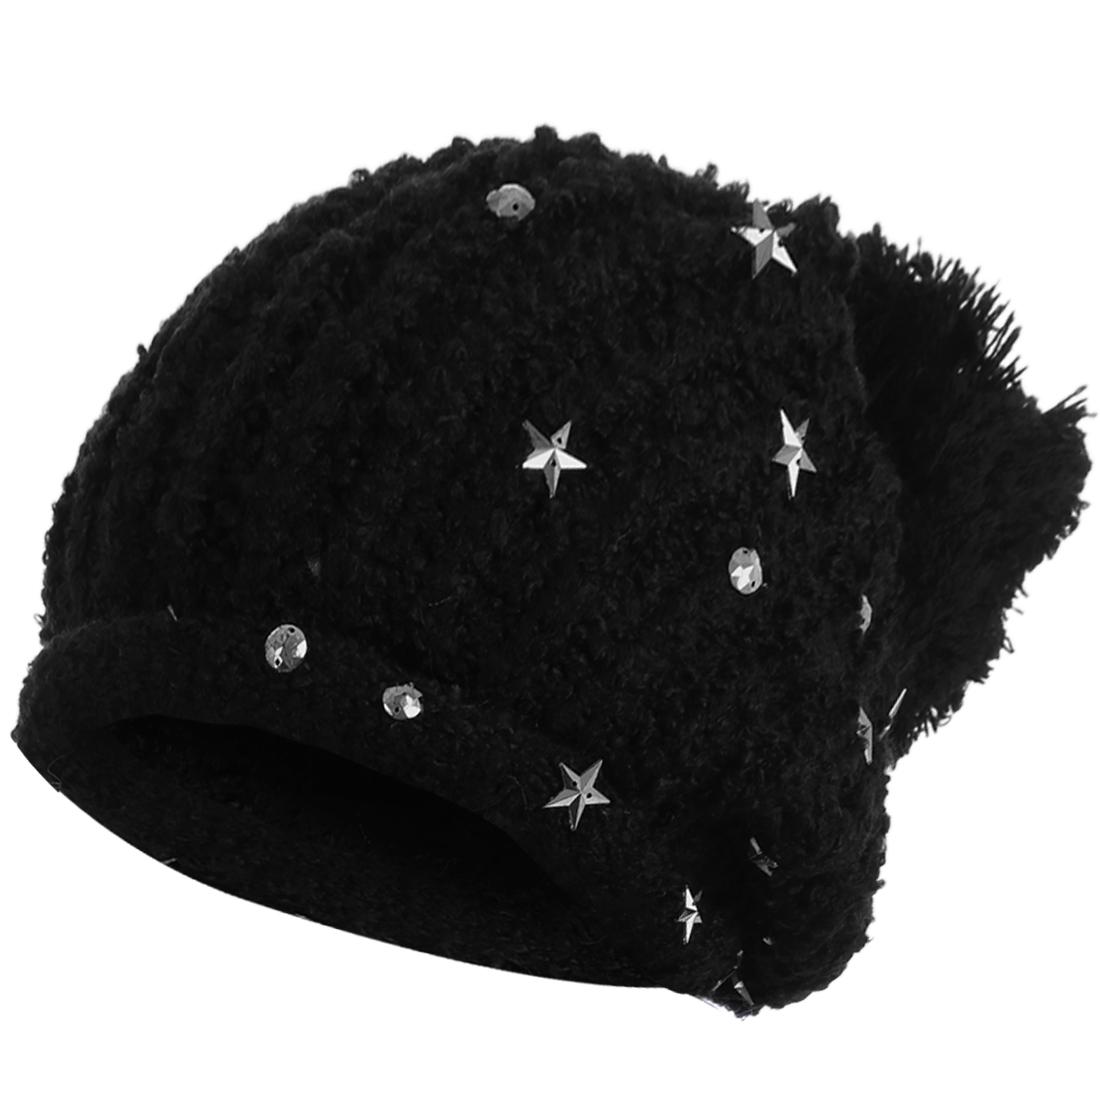 Women's Winter Lovely Pom Pom Stretchy Stars Decor Black Knitted Beanie